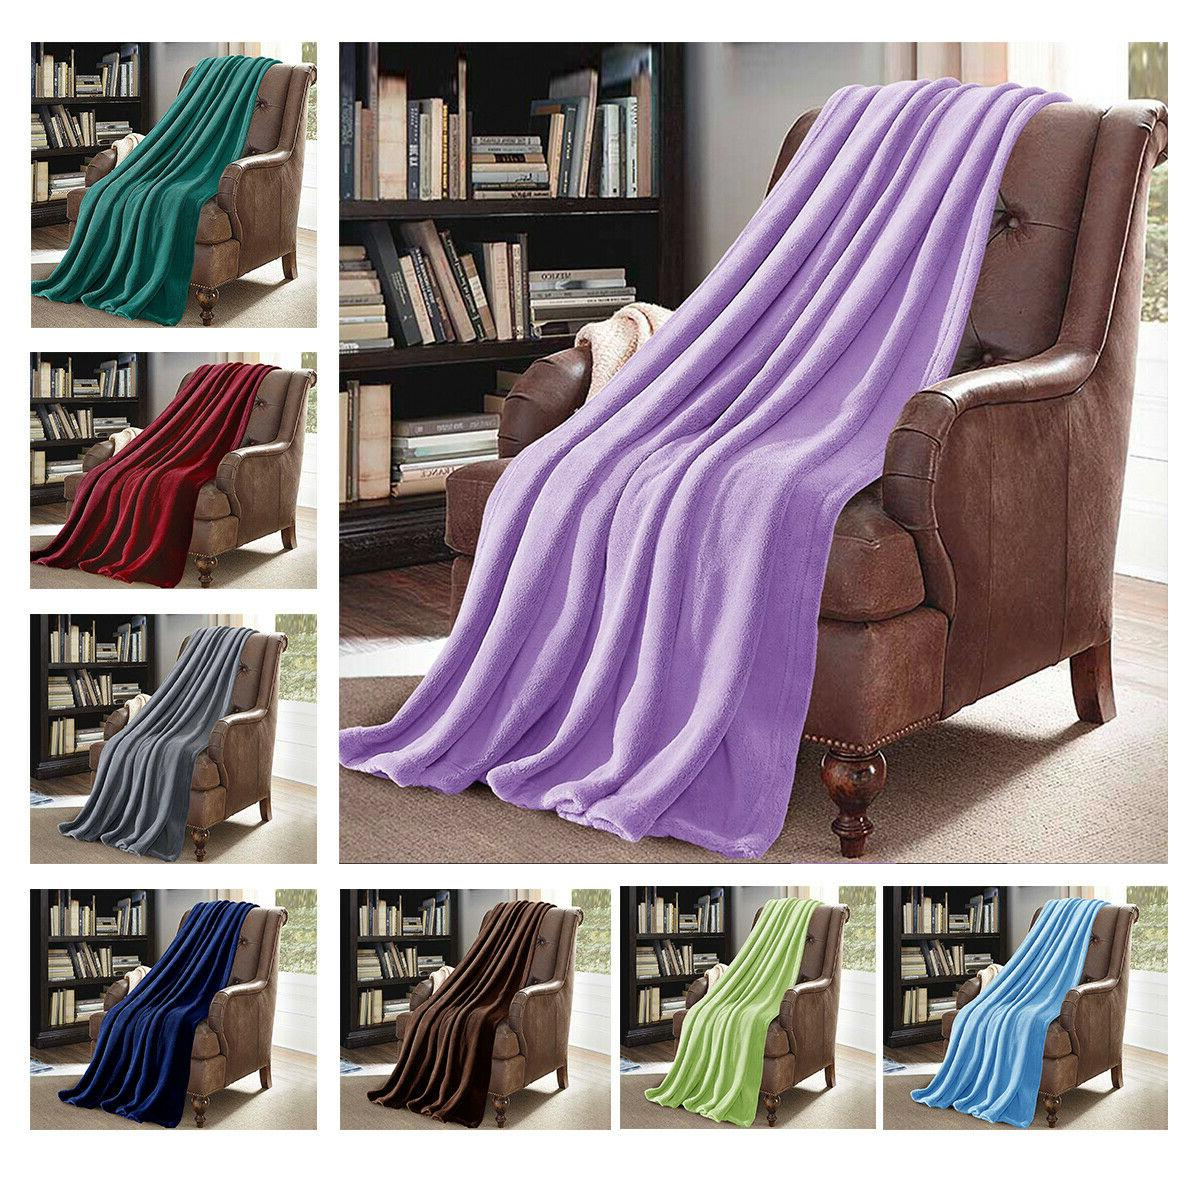 Throw Blanket Soft Lightweight Cozy Fleece For Sofa Couch 50